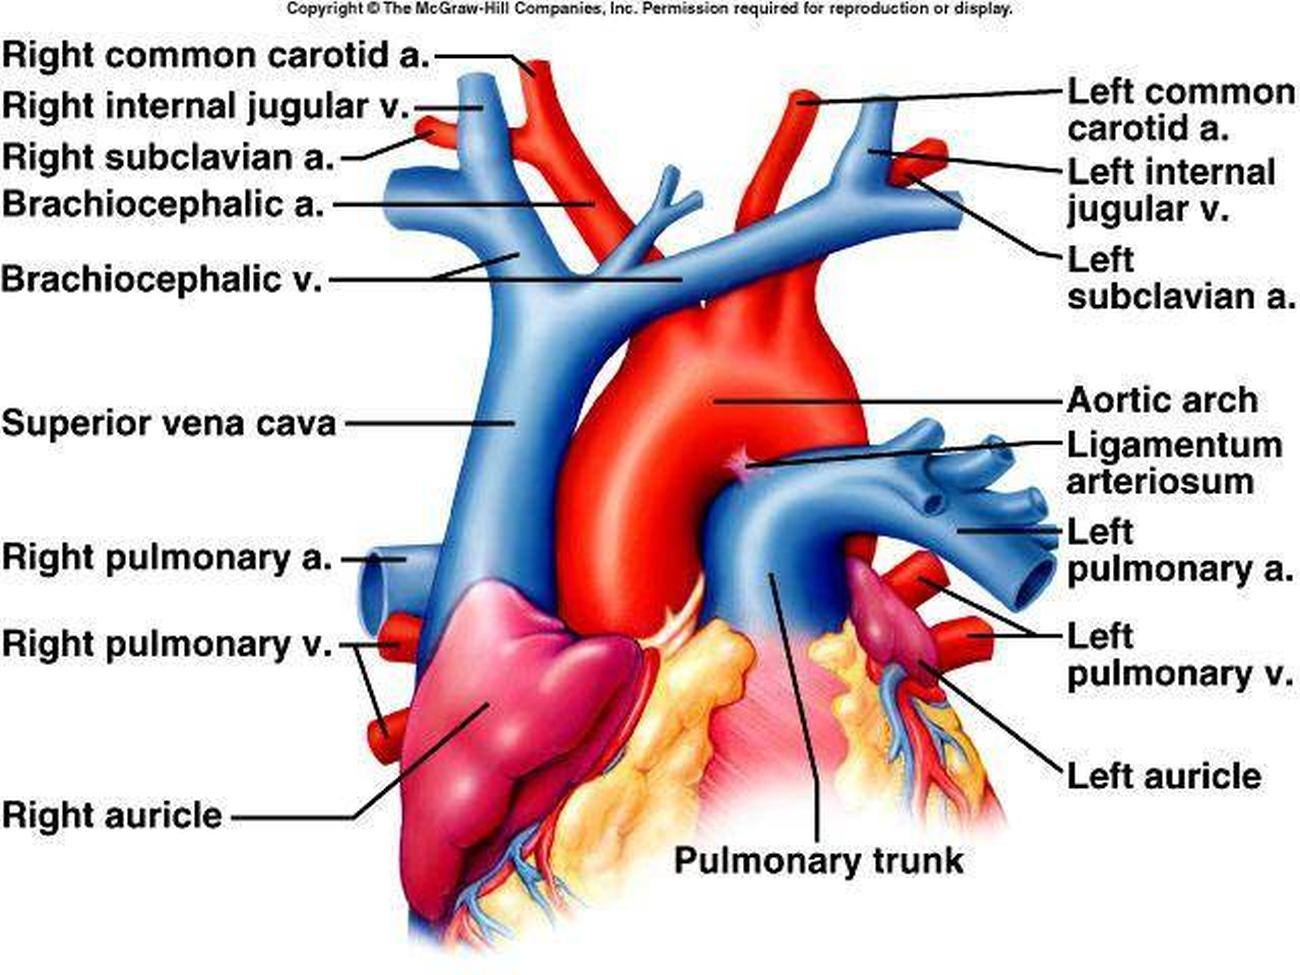 carotid artery diagram ignition system wiring pictures of brachiocephalic vein